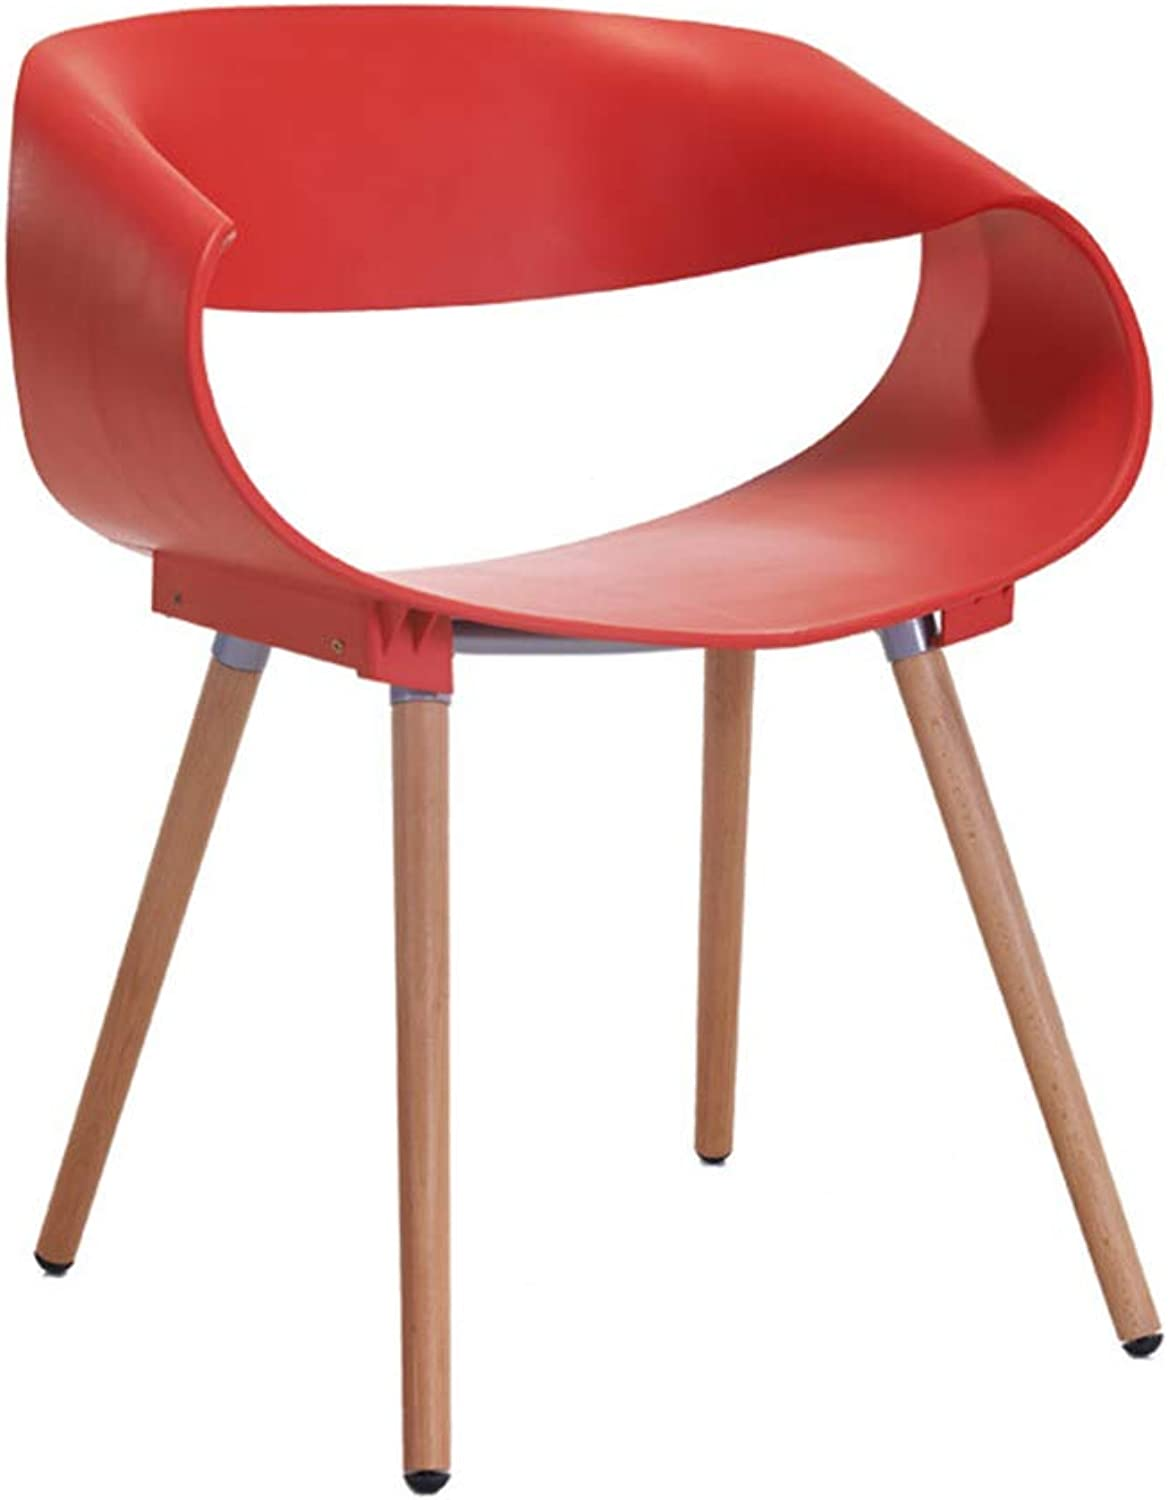 Chair - a Variety of colors Simple Solid Wood Plastic backrest armrest Dining Chair Leisure Chair (color   RED, Size   46  47  75cm)